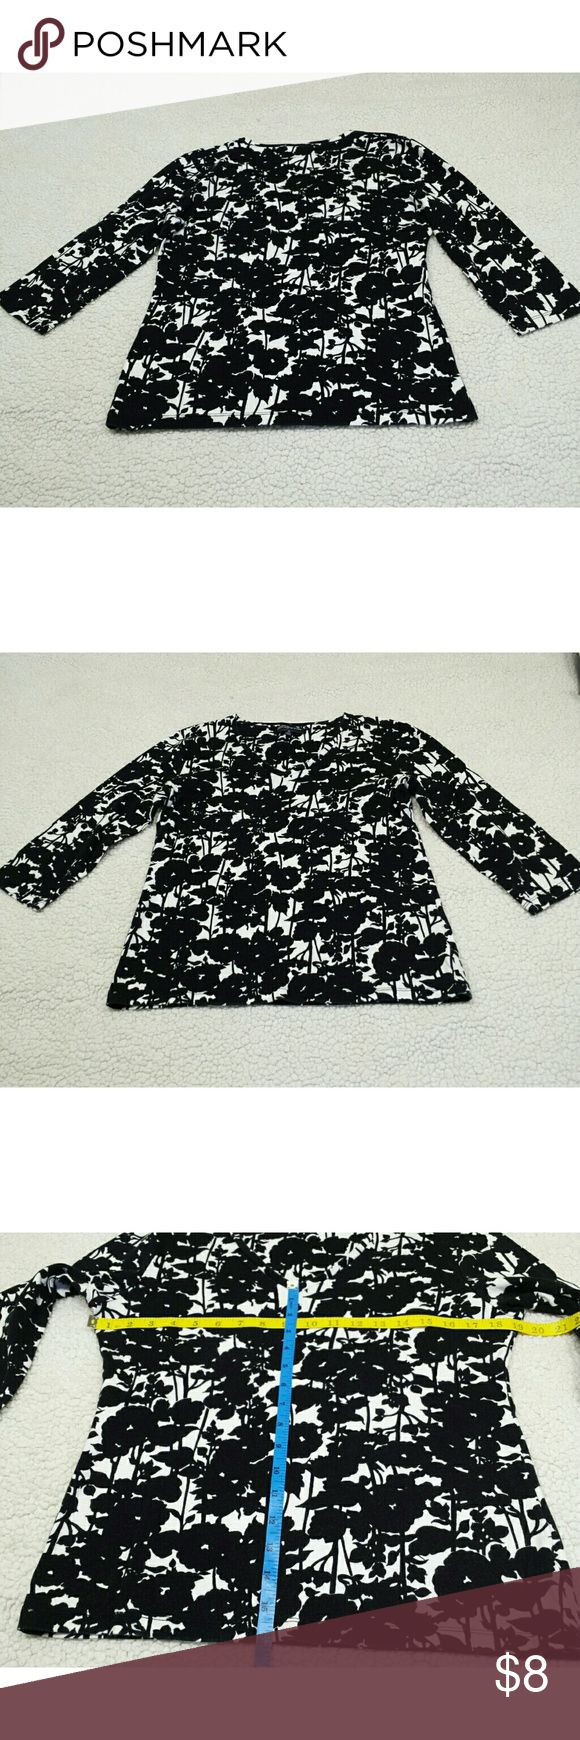 JONES NEW YORK  signature black & white  (  M  ) JONES NEW YORK  signature black & white  (  M  ) Jones New York Tops Blouses